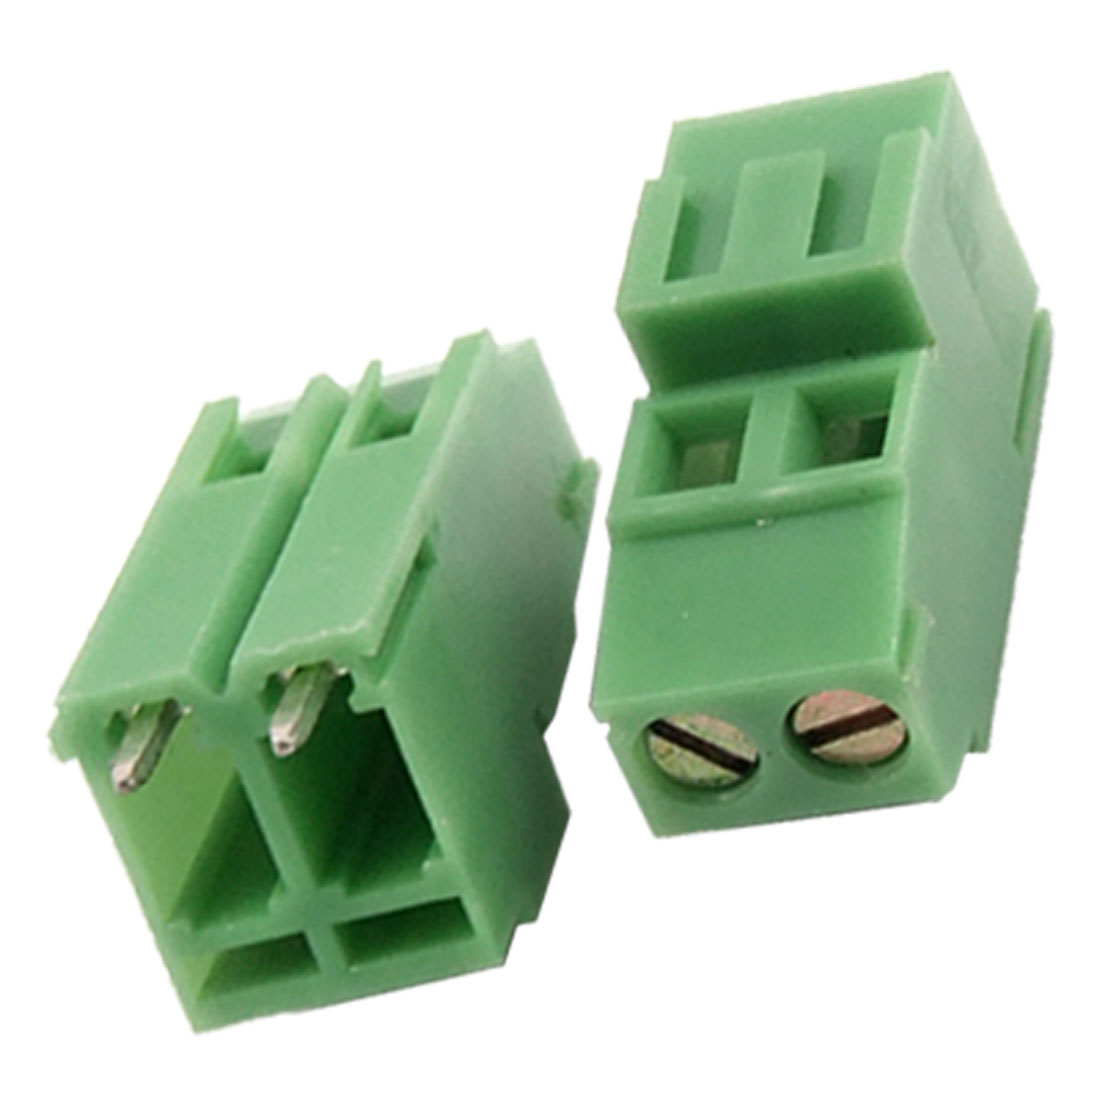 5 Pcs 2P 2-Way 5.08mm Pitch Terminal Block Connectors 10A